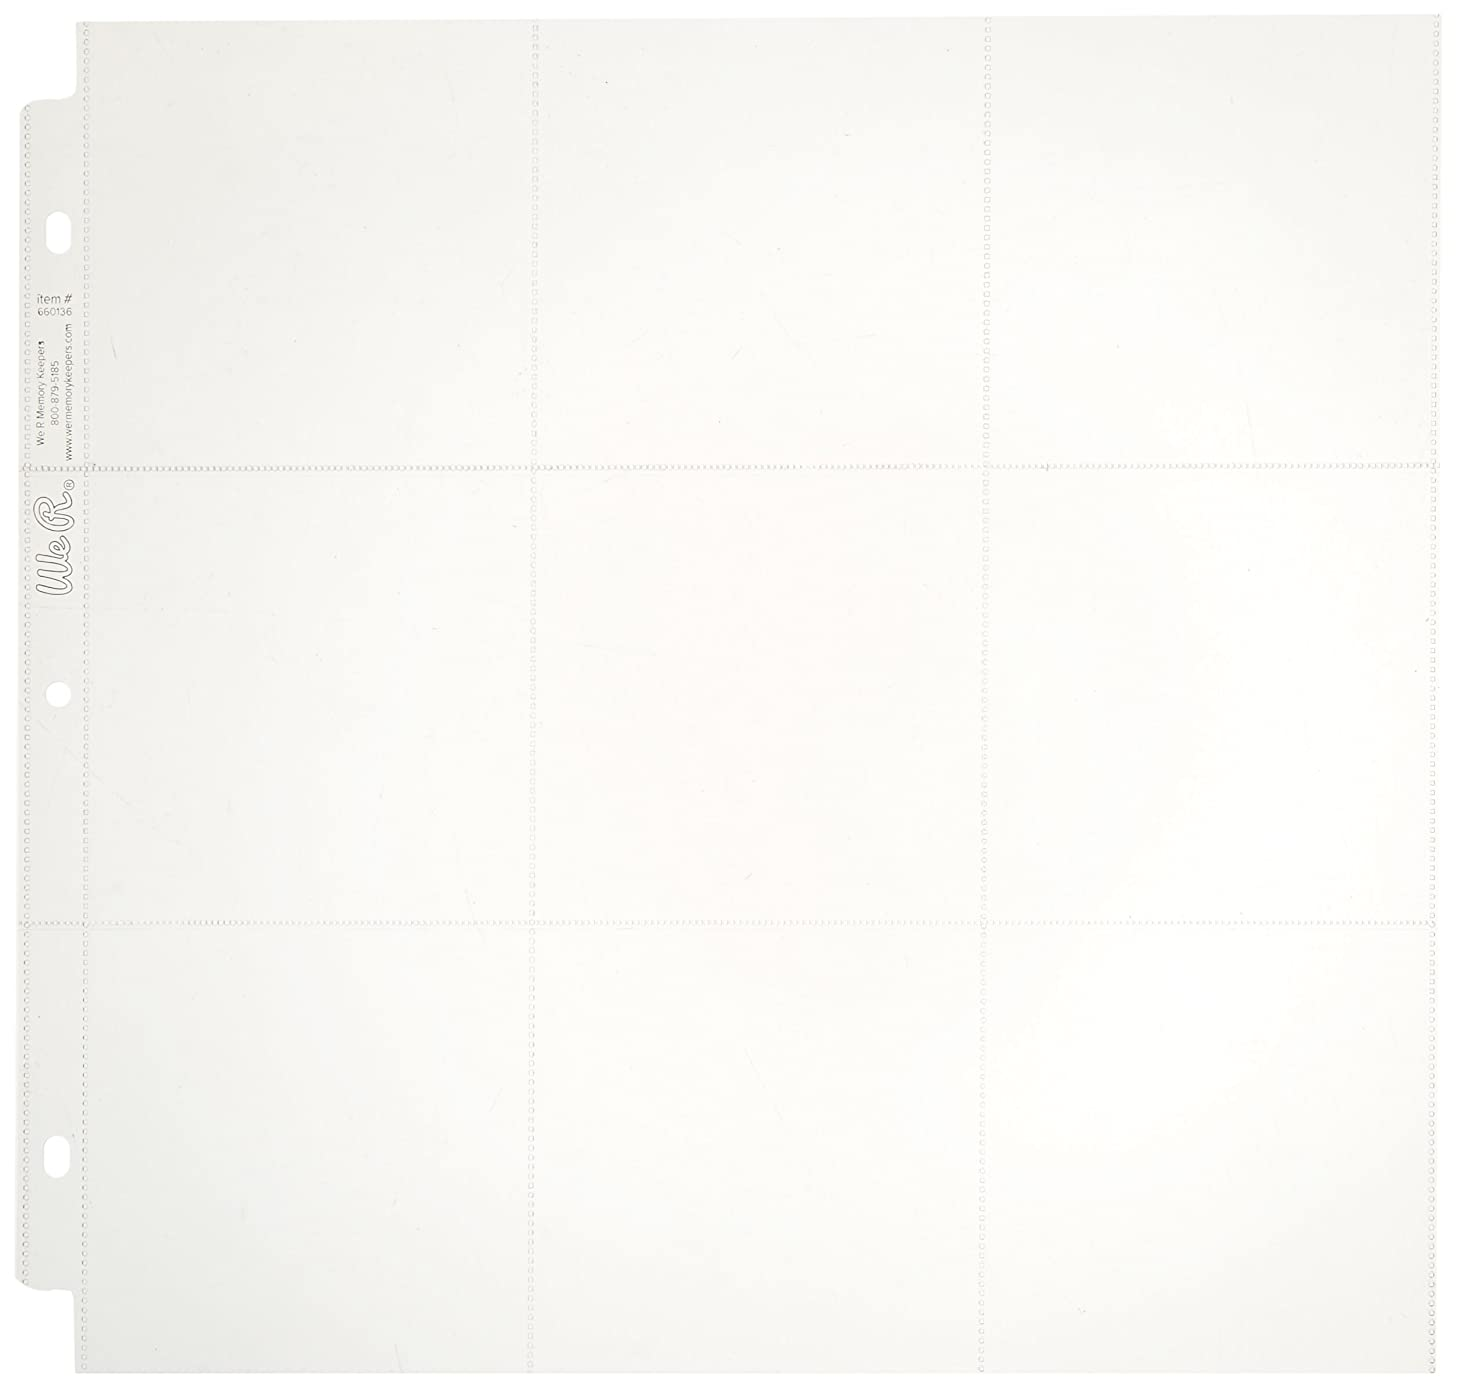 We R Memory Keepers 12 x 12-inch 3-Ring Album Page Protectors Multipack Includes 10 Sheets in Various Sizes